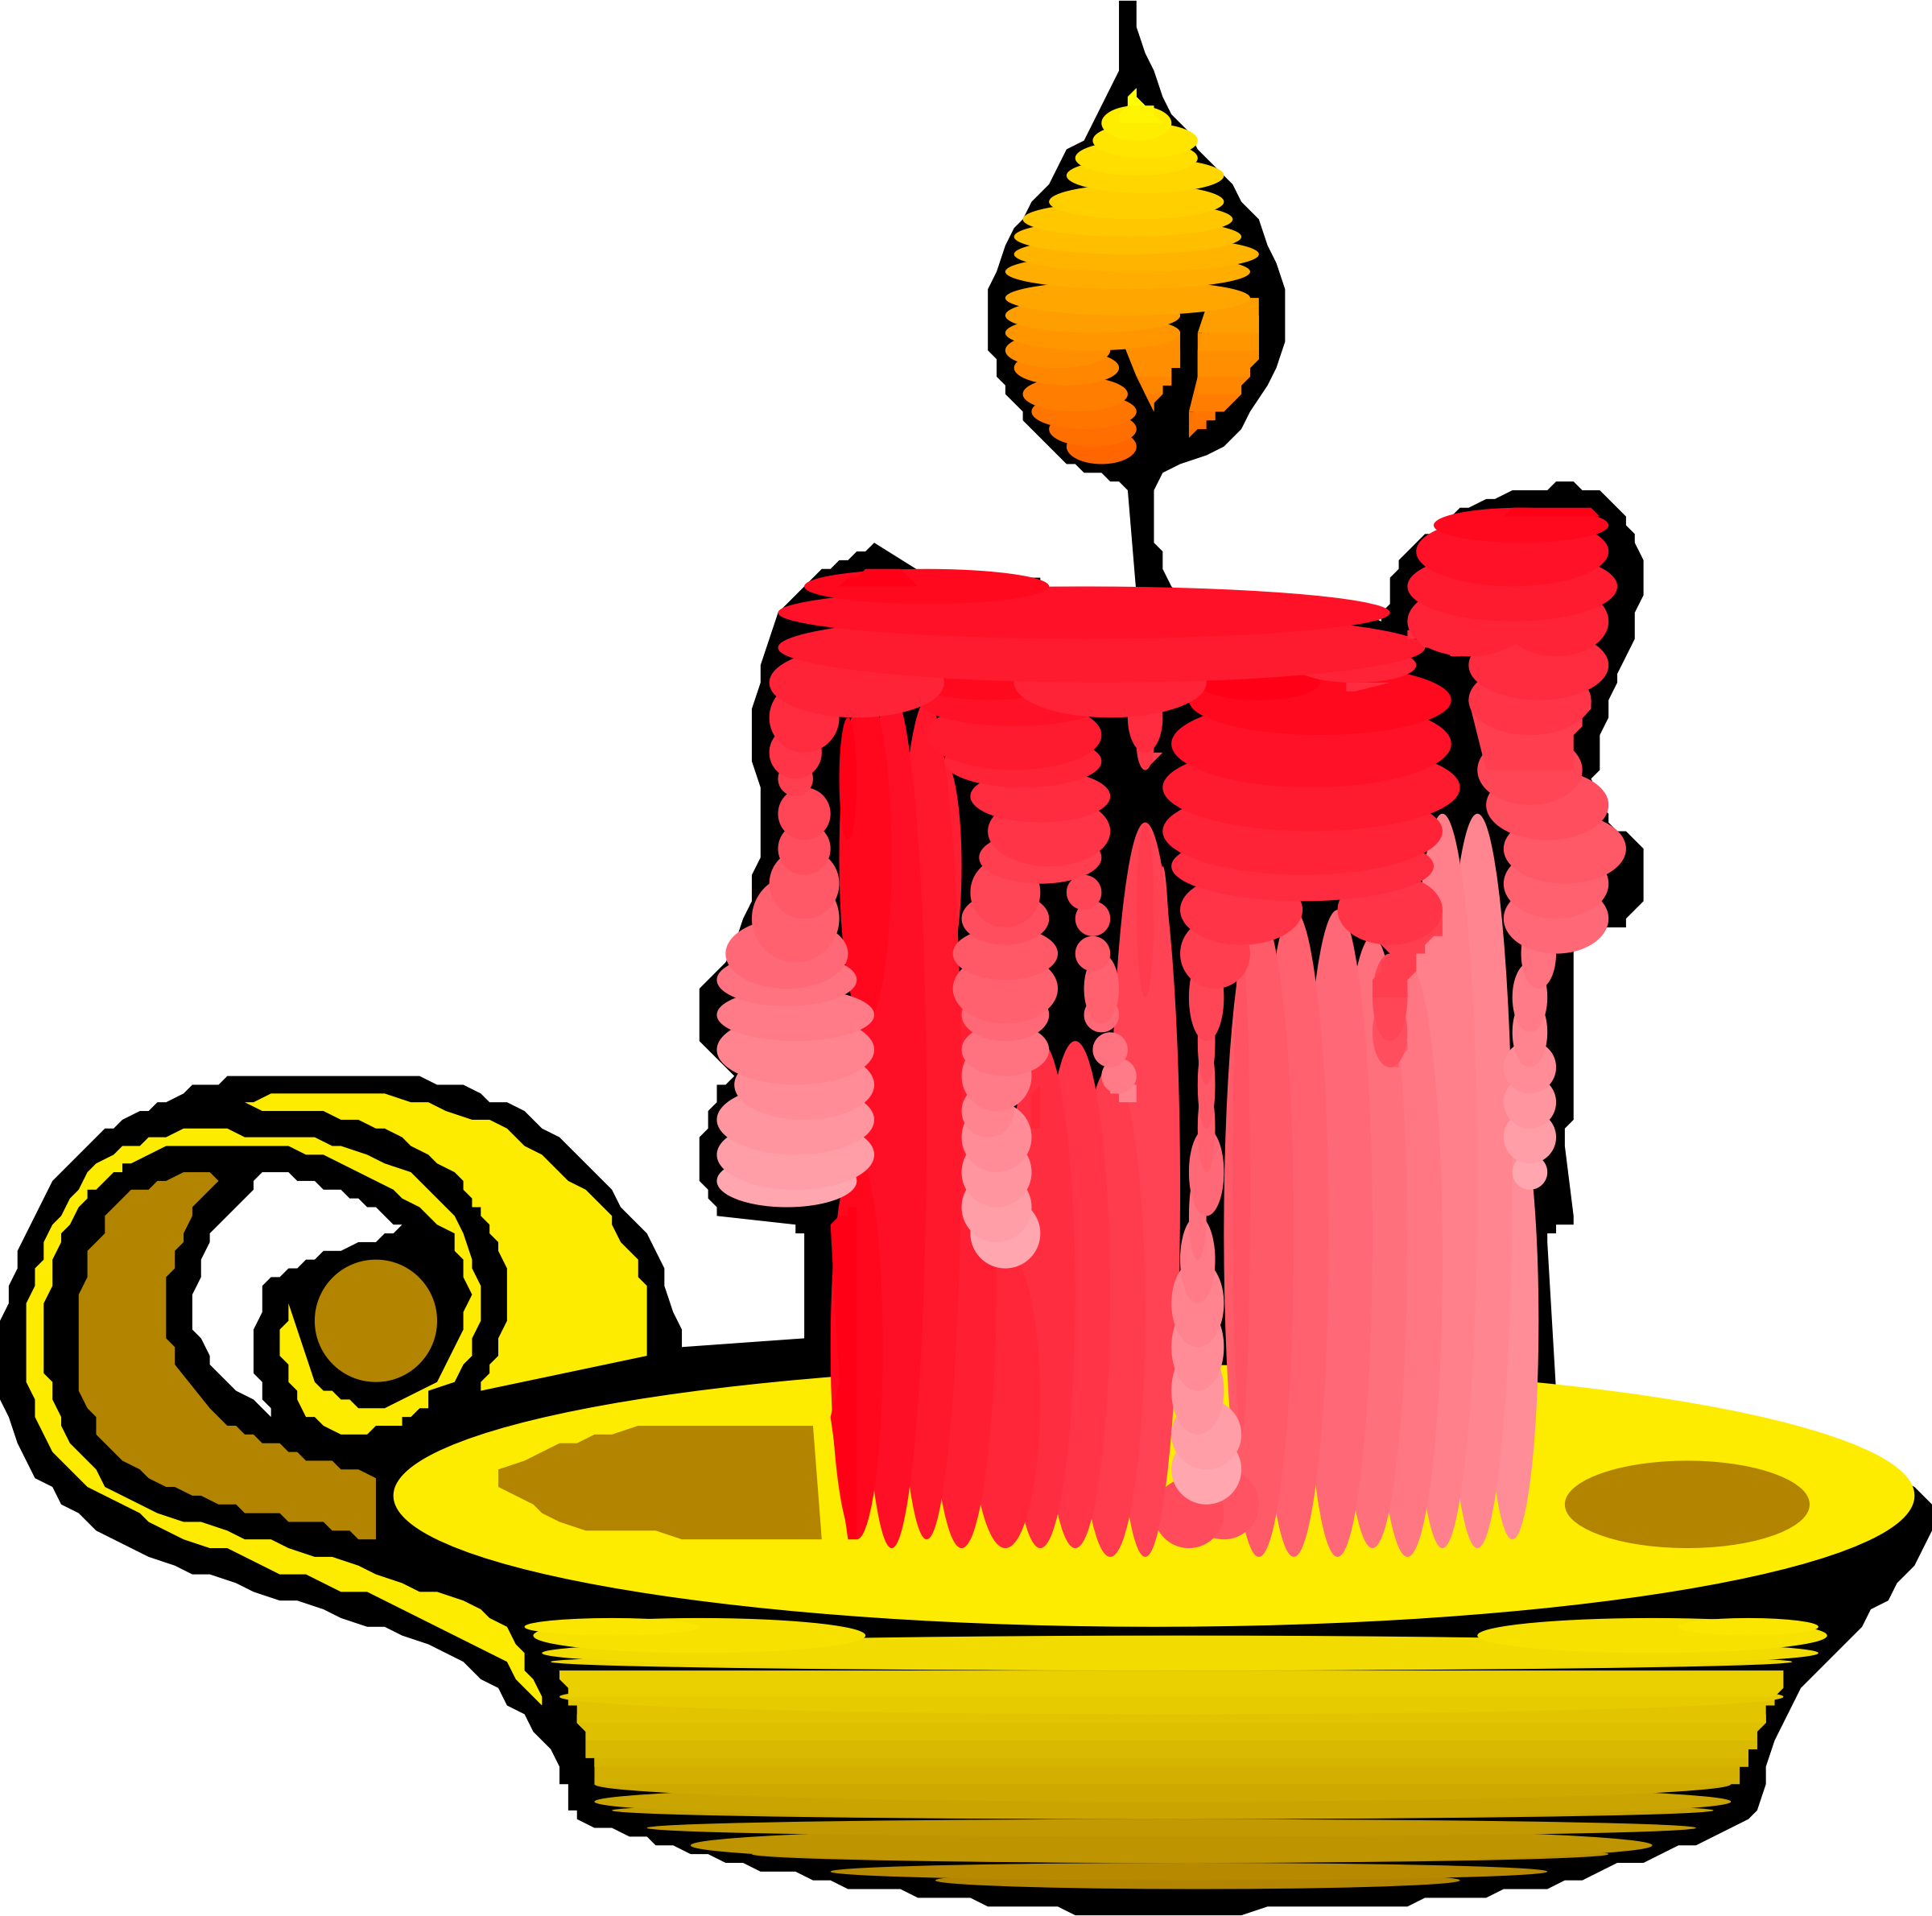 graphic royalty free download Big image png. Candle clipart red candle.